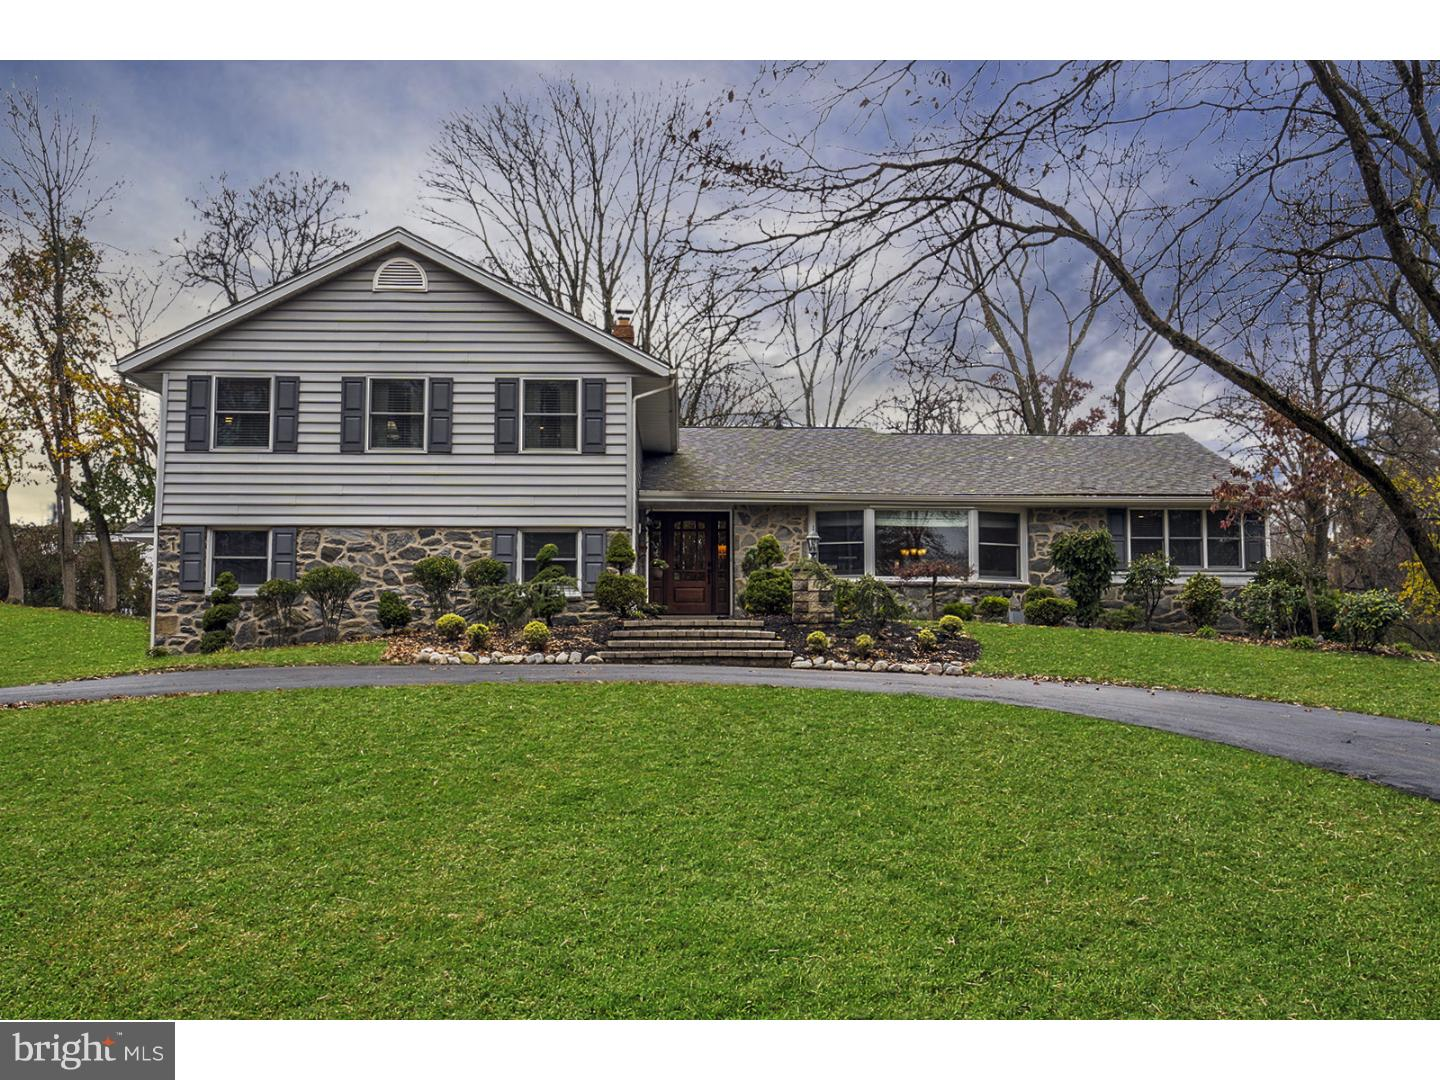 Totally renovated 4 level home that sits at the end of a cul-de-sac on a large lot adjacent to Radnor Valley and Overbrook County Clubs. You will be impressed by the circular (widened) driveway with column lighting and the paver pathway leading to covered front entrance. Open the Mahogany beveled glass door with side lights into the open foyer with glistening hardwood floors. The living room features recessed lighting and custom moulding that leads into the intimate dining room with coffered ceiling and wainscoting. The dining room is open to the sun room with access to the office. The beautifully renovated Kitchen, with cream colored raised panel soft closet cabinetry, offers a wet bar and glass top cabinets, ceramic tile flooring, glass tile backsplash, stainless steel appliances, large breakfast area and an outside exit to a paver patio. The lower level features a   23 x 15 family room with wood burning fireplace, slider to a second paver patio, powder room, laundry room with access to the garage and the partially finished basement with high ceiling. The second floor features a Master Bedroom suite with his-and-hers walk-in closet, new luxurious bath with double bowl marble topped vanity, Yorktown cabinetry, and a marble shower with rain head and frameless glass door; Three additional nice-sized bedrooms with access to the black-and-white tiled hall bath with double bowl granite topped vanity and soaking tub. So many additional superior upgrades have been recently performed including: raising the height of the family room ceiling, custom millwork and mouldings throughout, Whole house Generac Generator, oil rubbed door hardware throughout, wide trim throughout, new HVAC, Pella Windows, widened and extended driveway with rustic column lighting, paver walkways and patios, attic insulation and so much more.